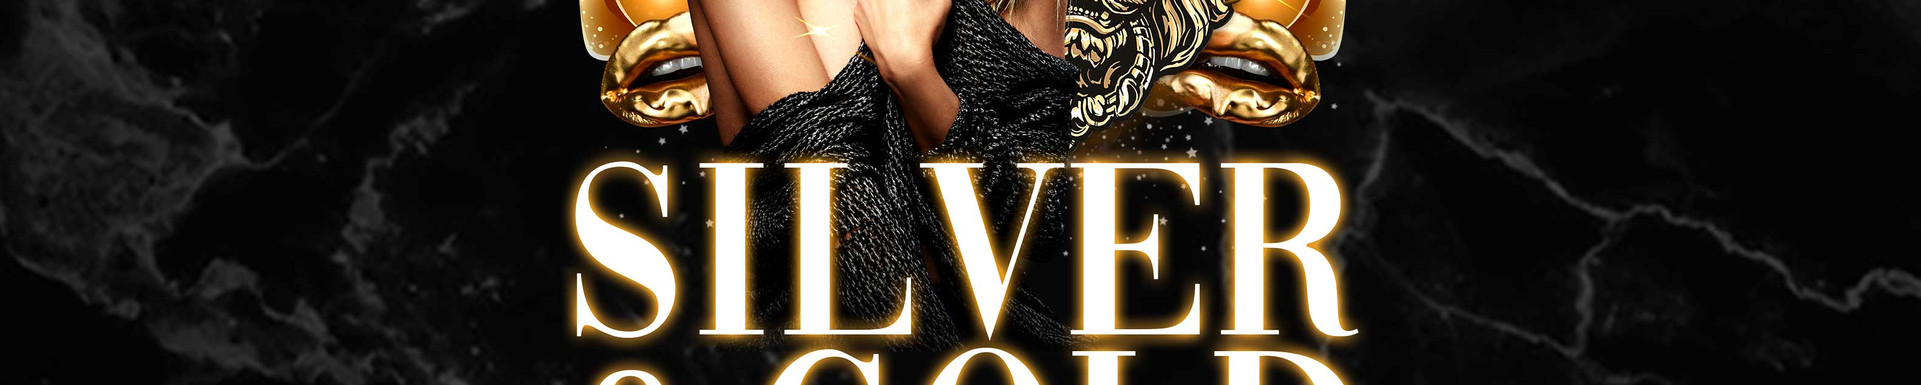 Embassy Presents: Silver & Gold